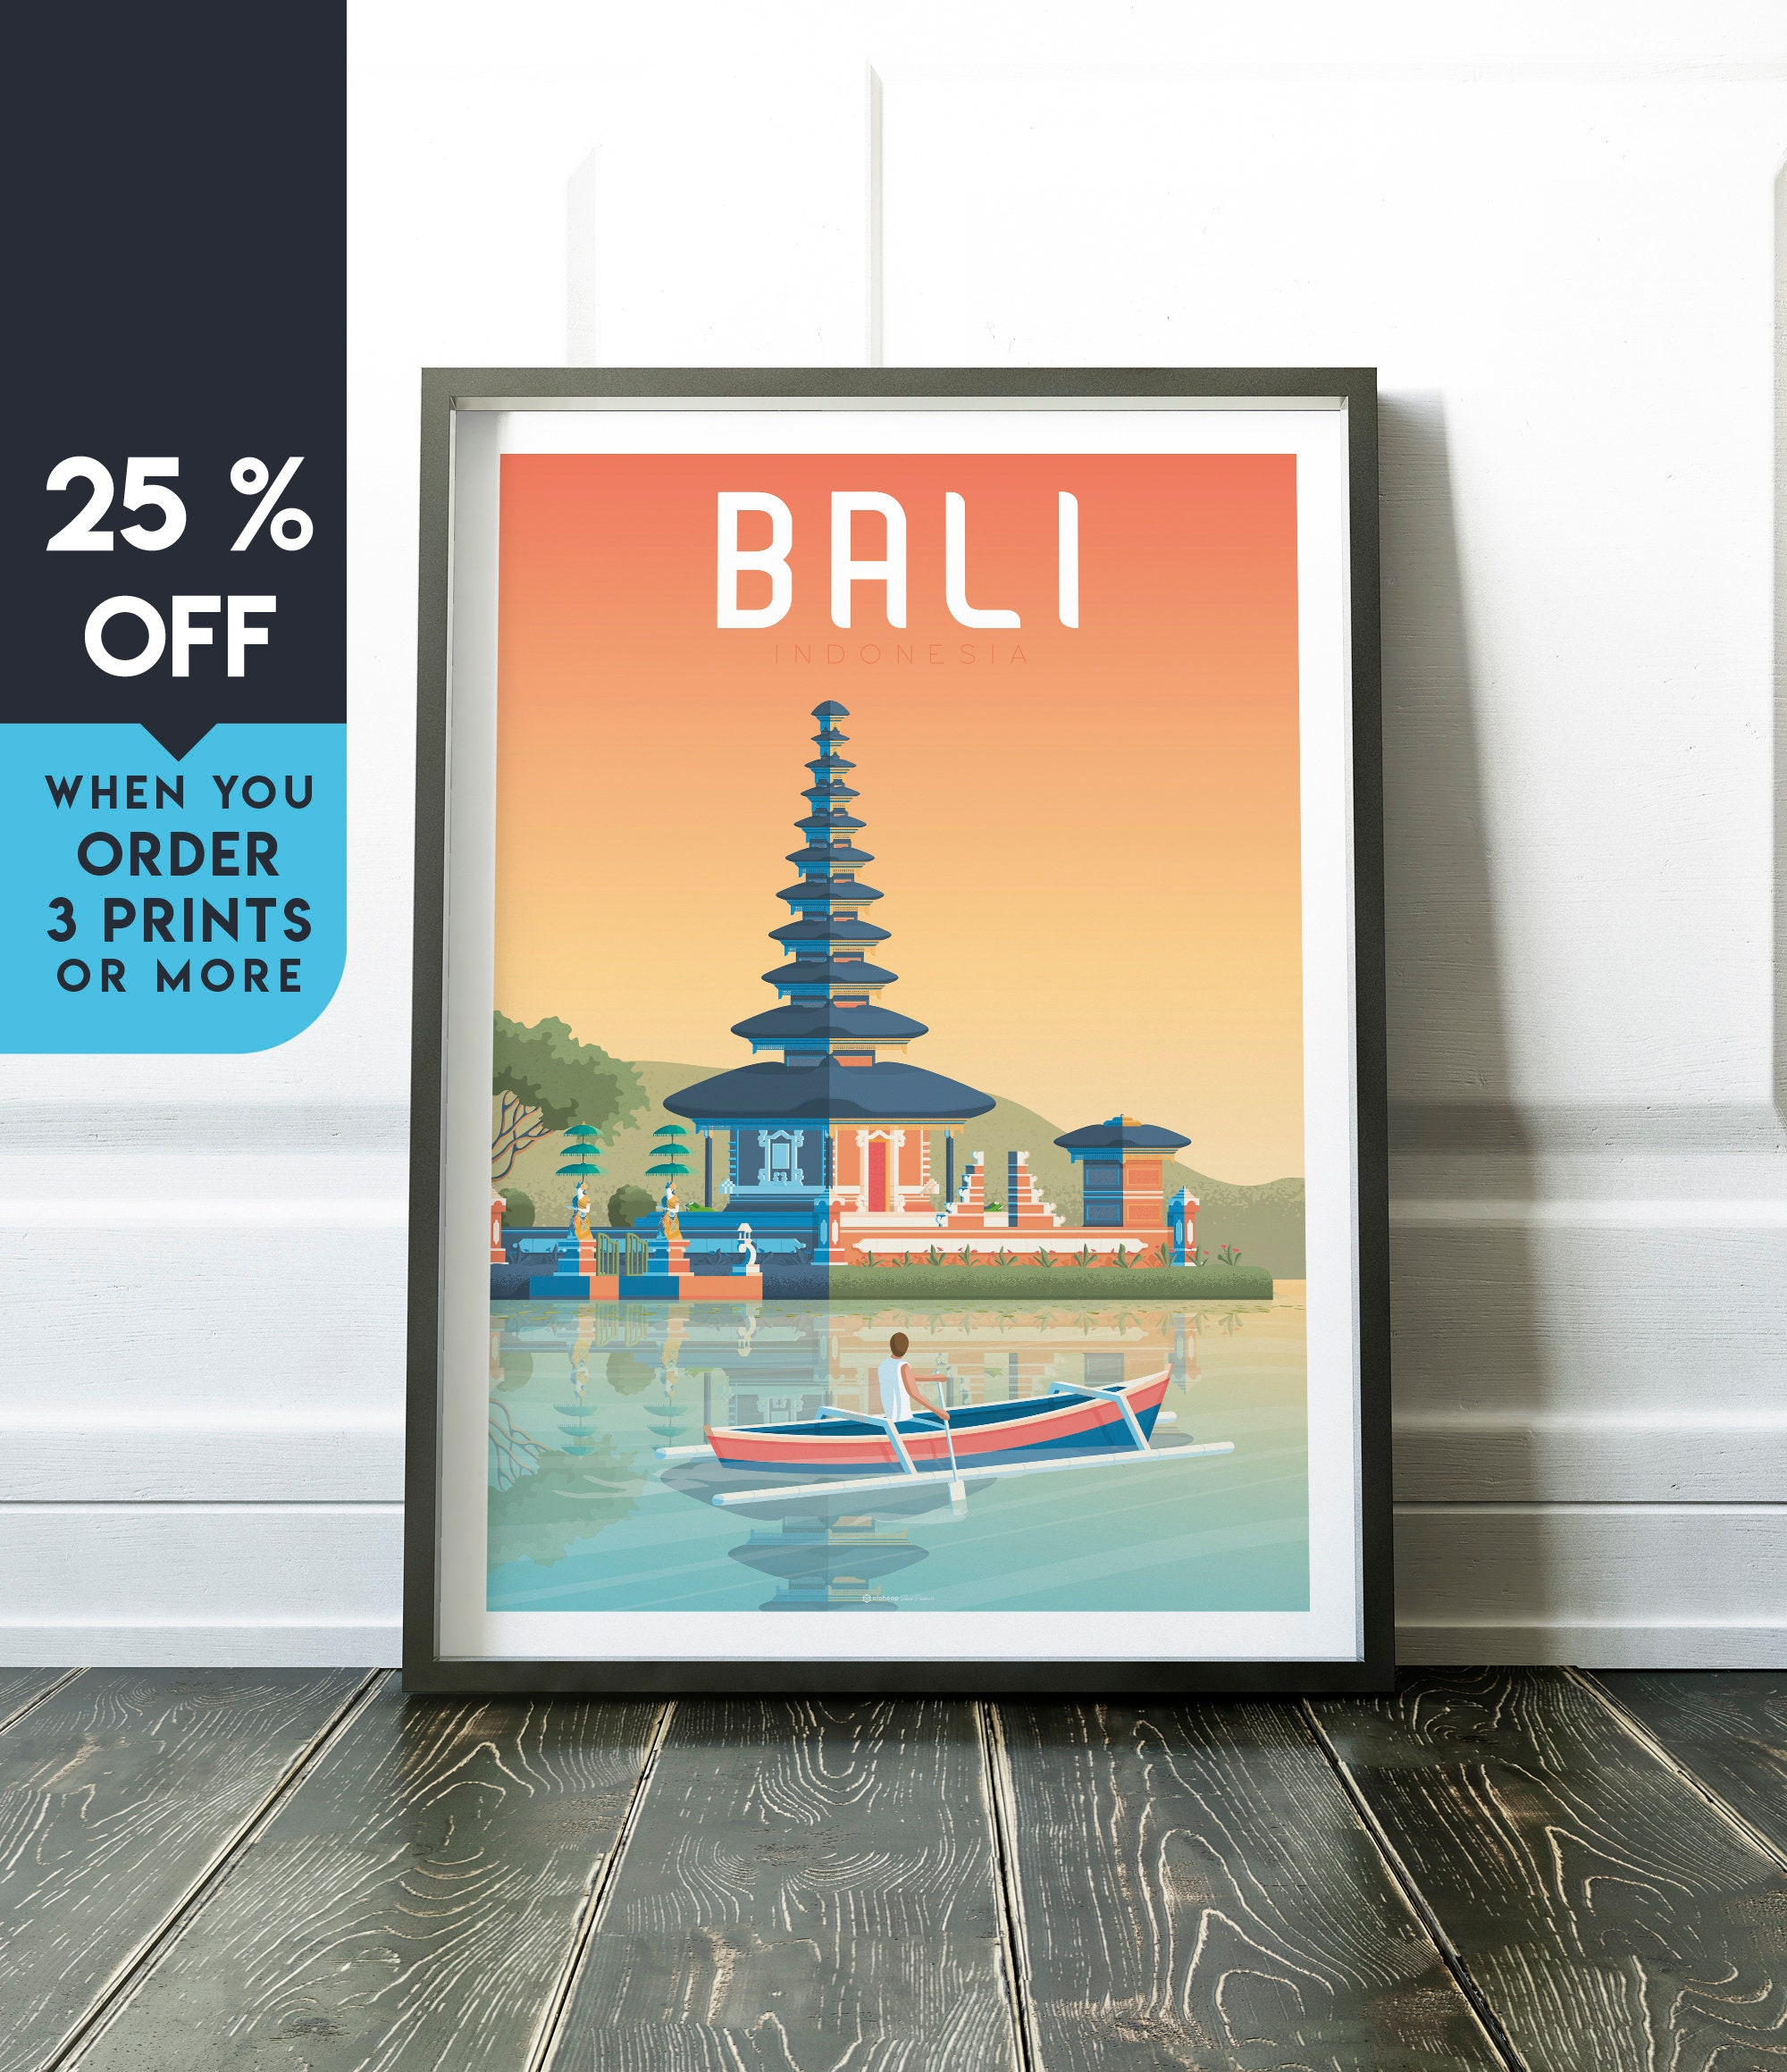 Bali Indonesia Vintage Travel Poster Wall Art Print